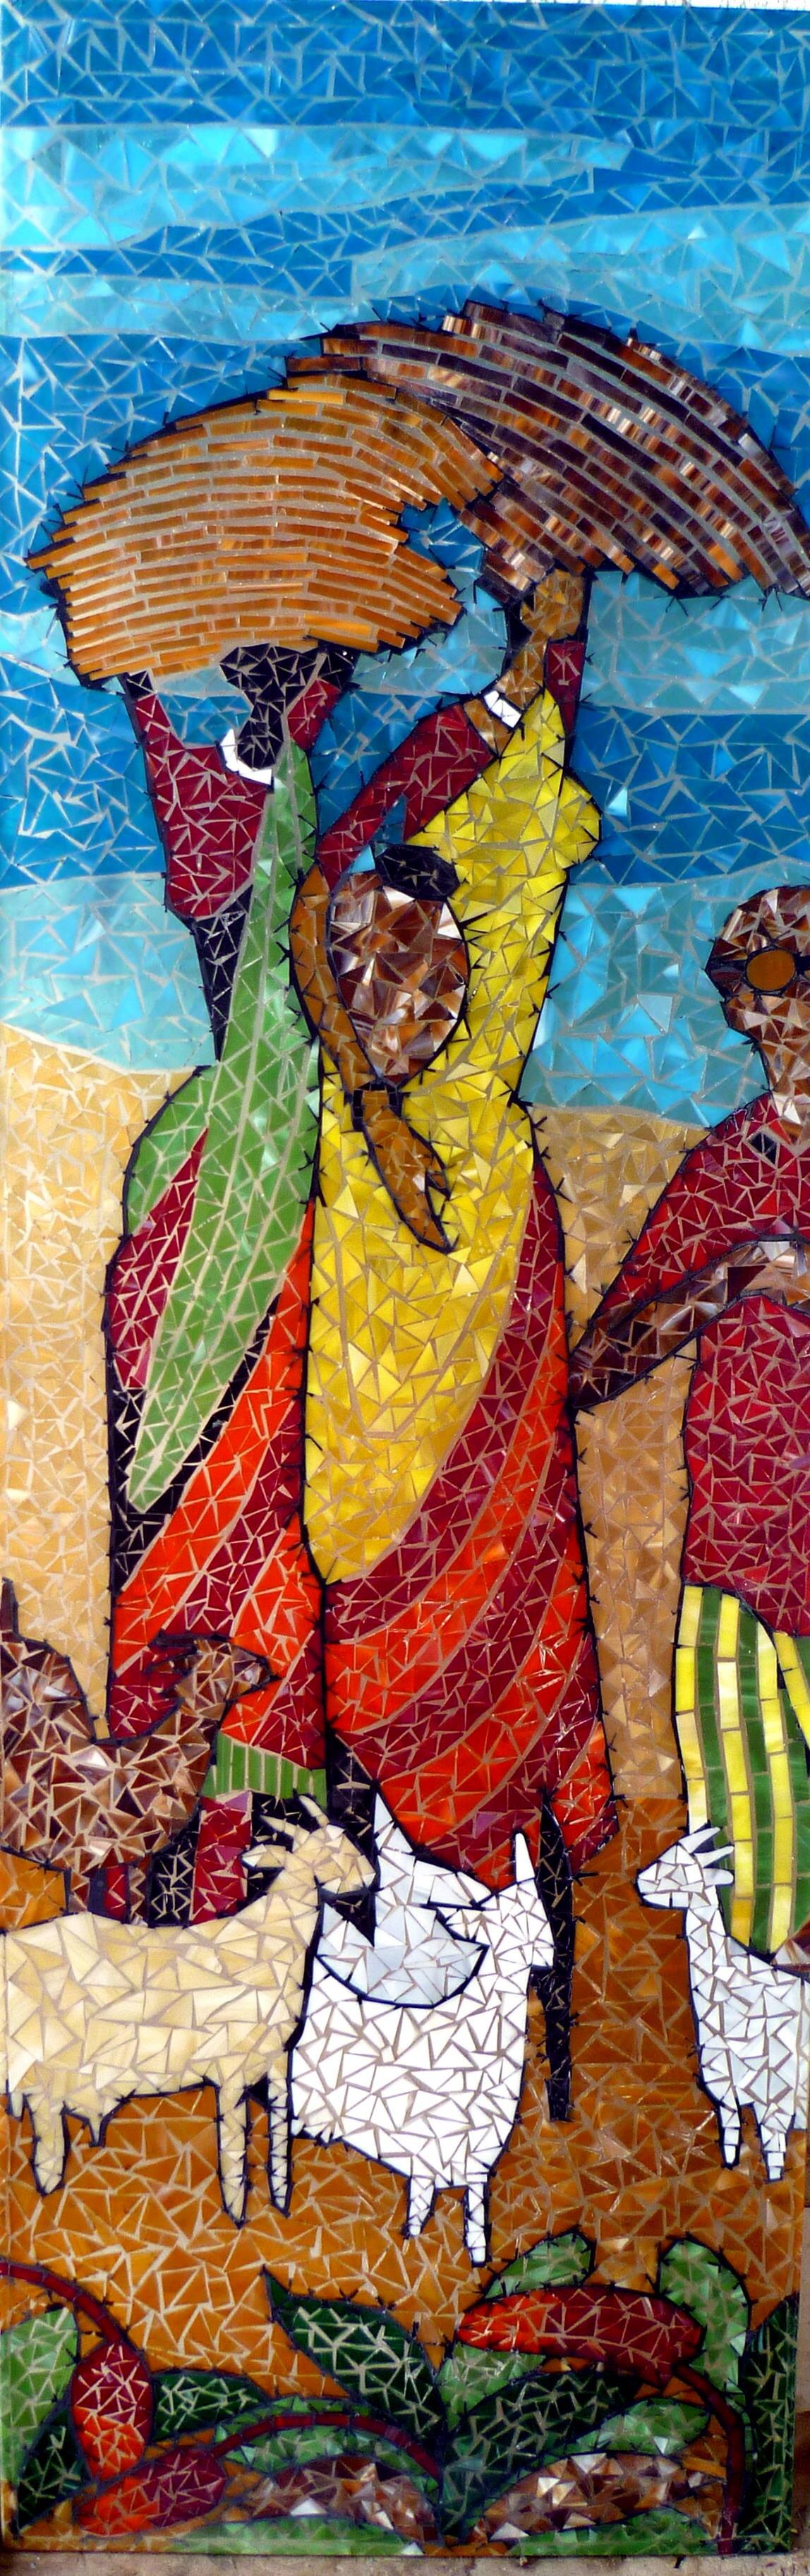 Glass mosaic done on thick glass plate by fehmida haider